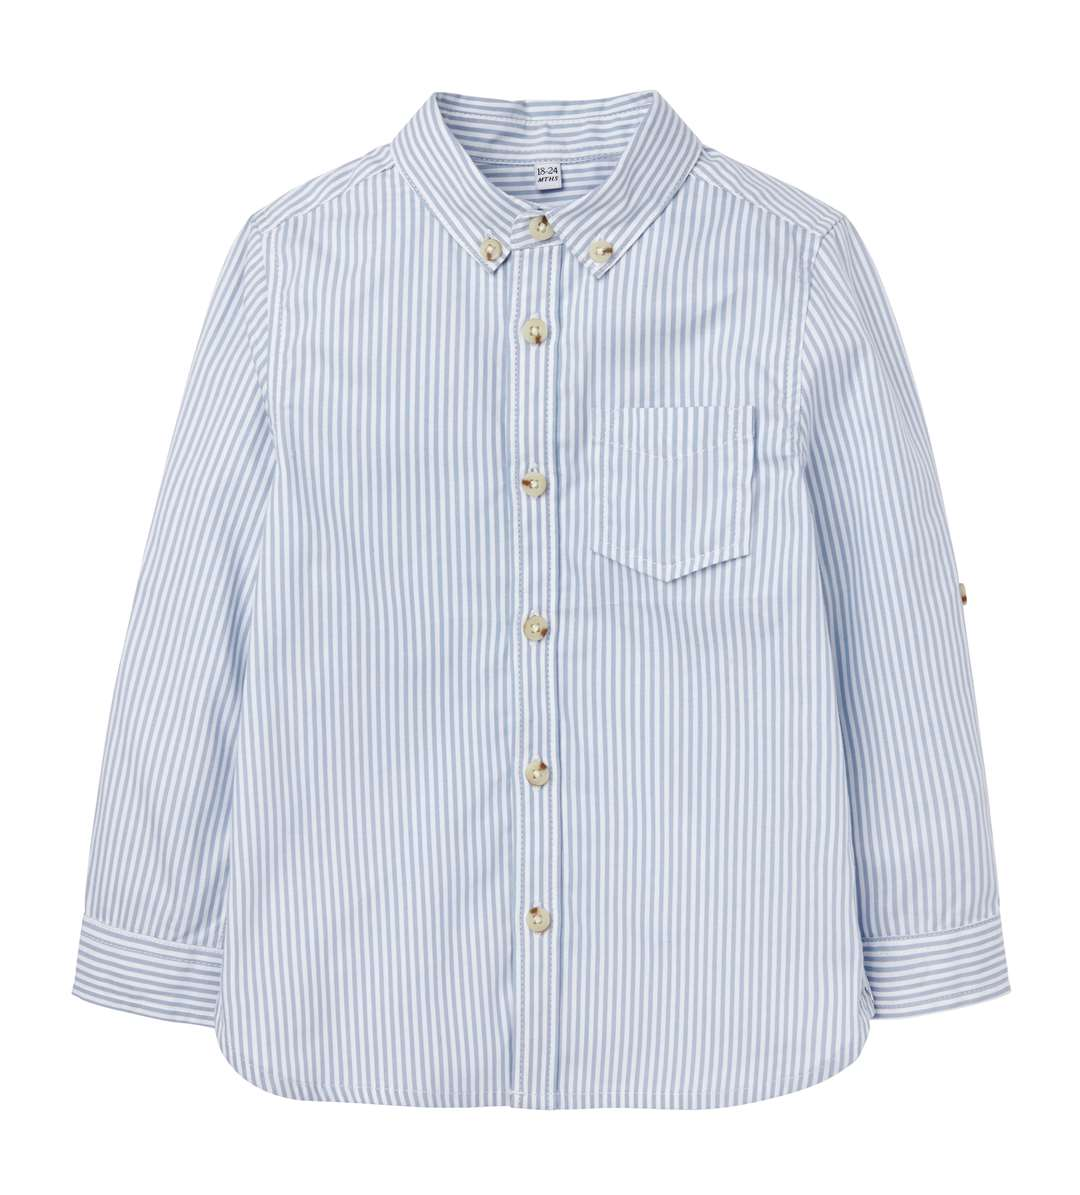 M&S Pure Cotton Striped Oxford Shirt, 3 months - 7 years, from £10